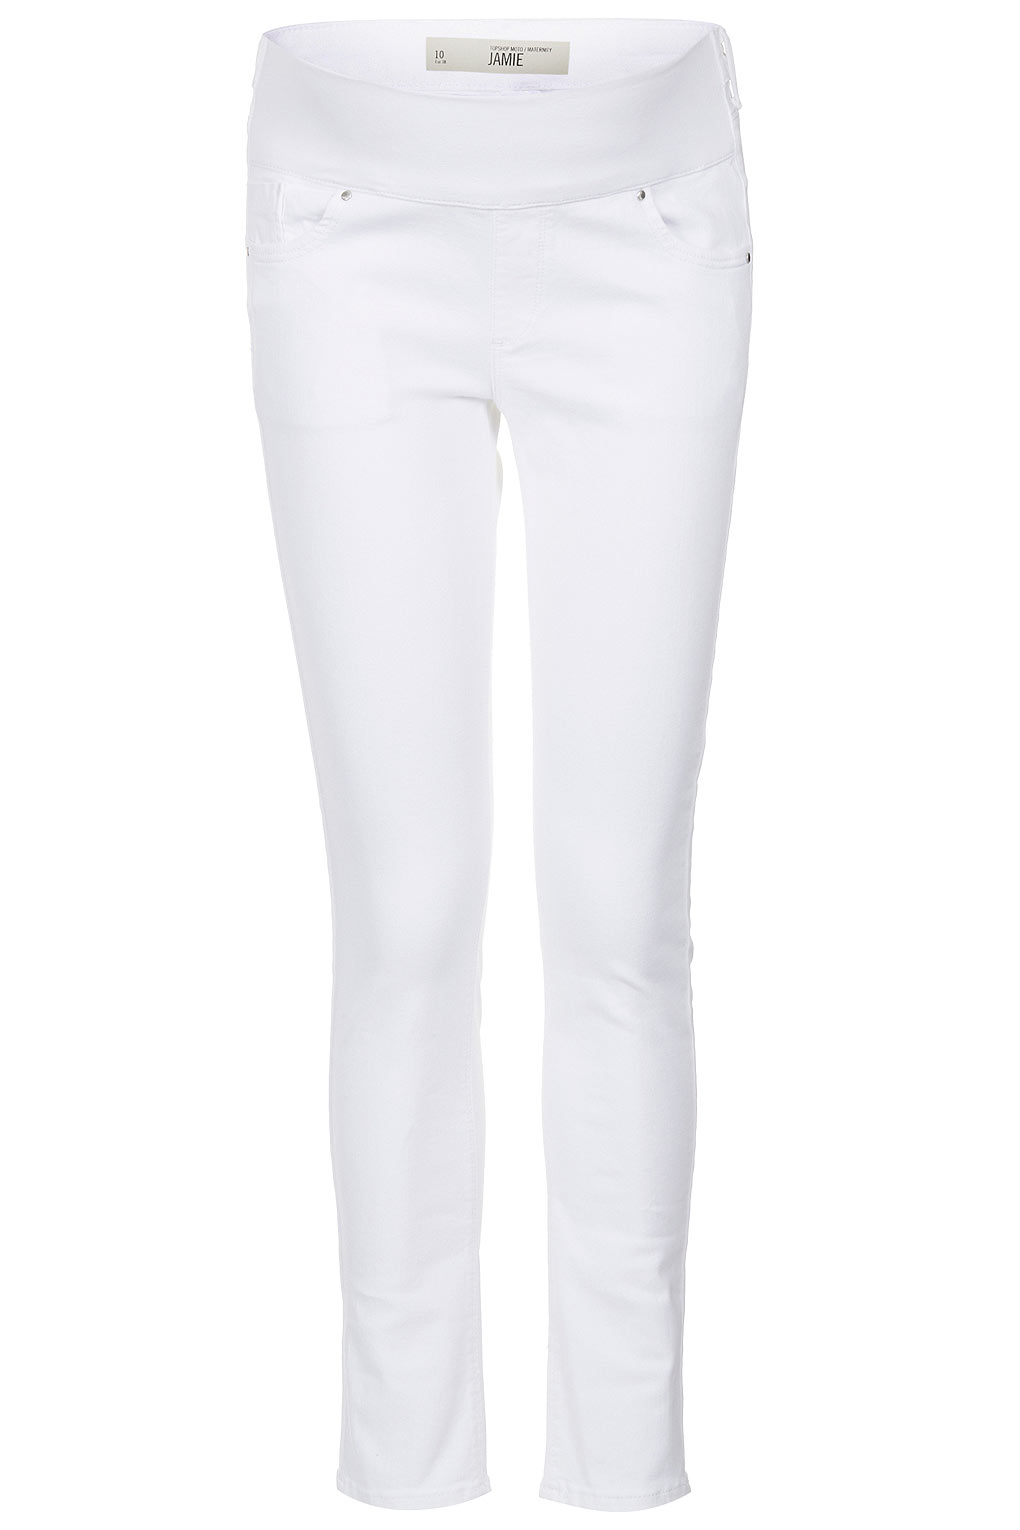 Topshop Maternity Moto White Jamie Jeans in White | Lyst